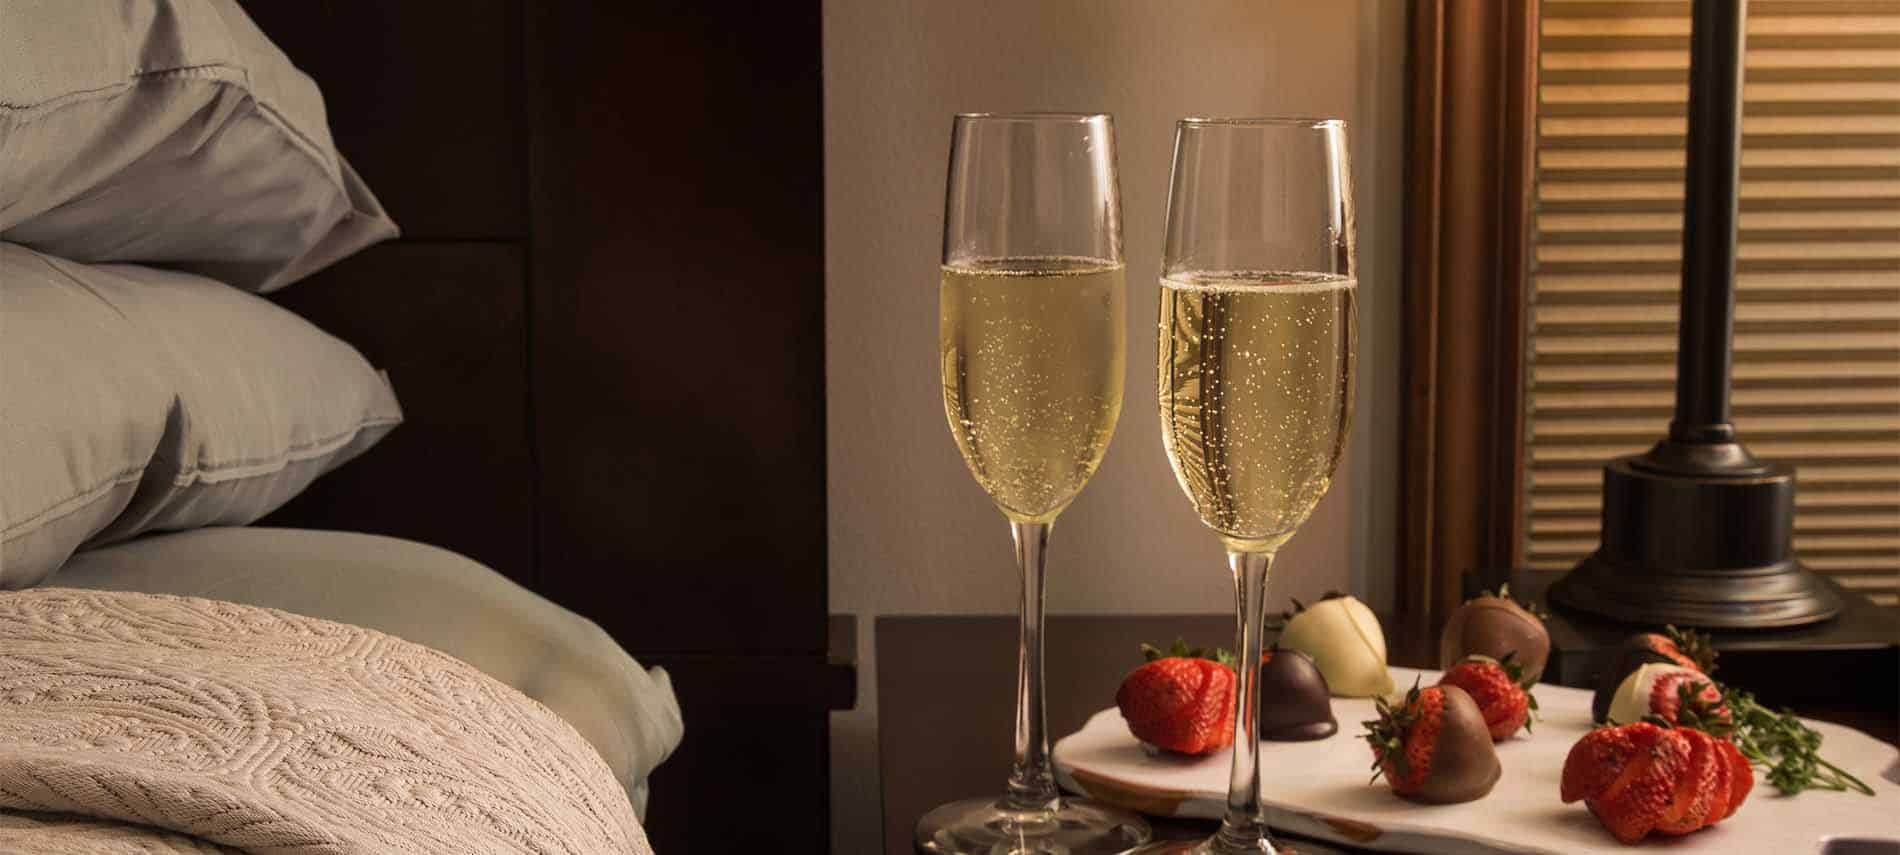 Champagne glasses filled with gently bubbling liquid, next to chocolate covered strawberries on a bedside table.